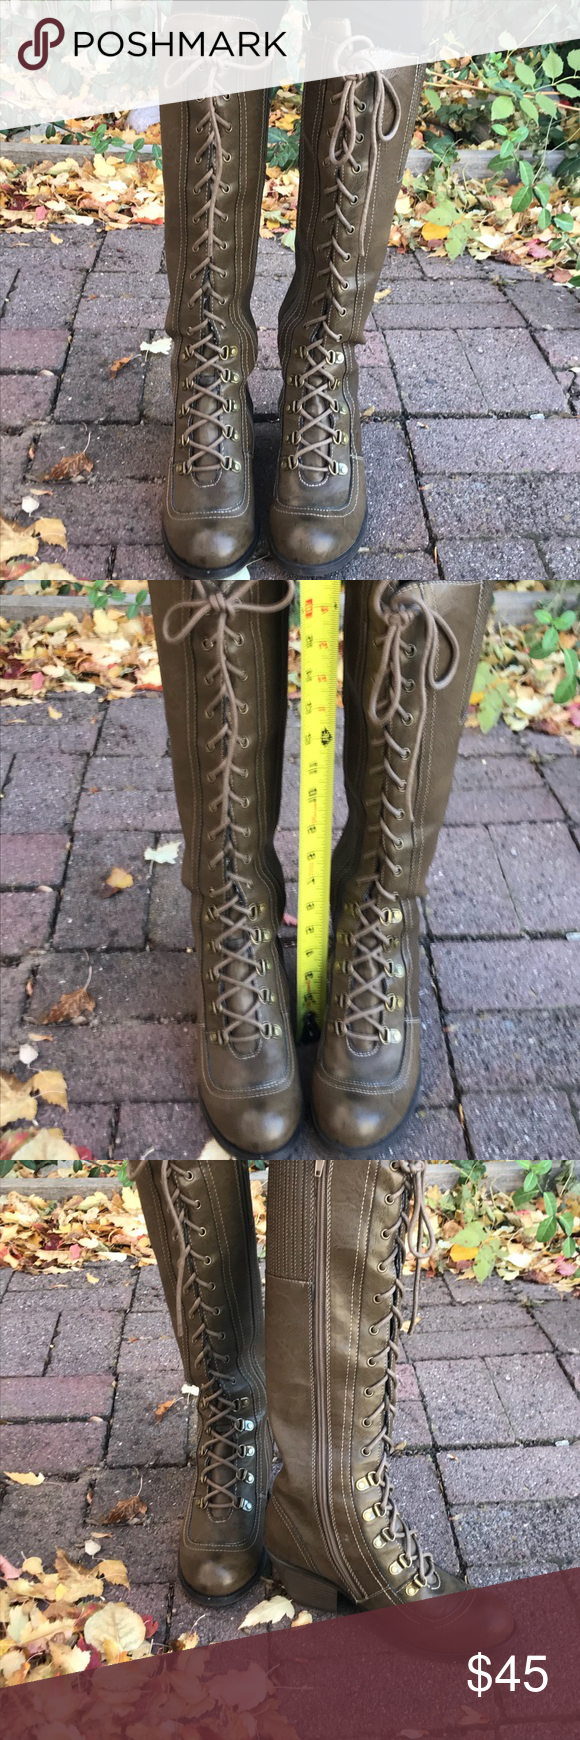 9924fde16b The color is an army green/beige type and the are meant to look distressed.  Good condition. Rocket Dog Shoes Lace Up Boots